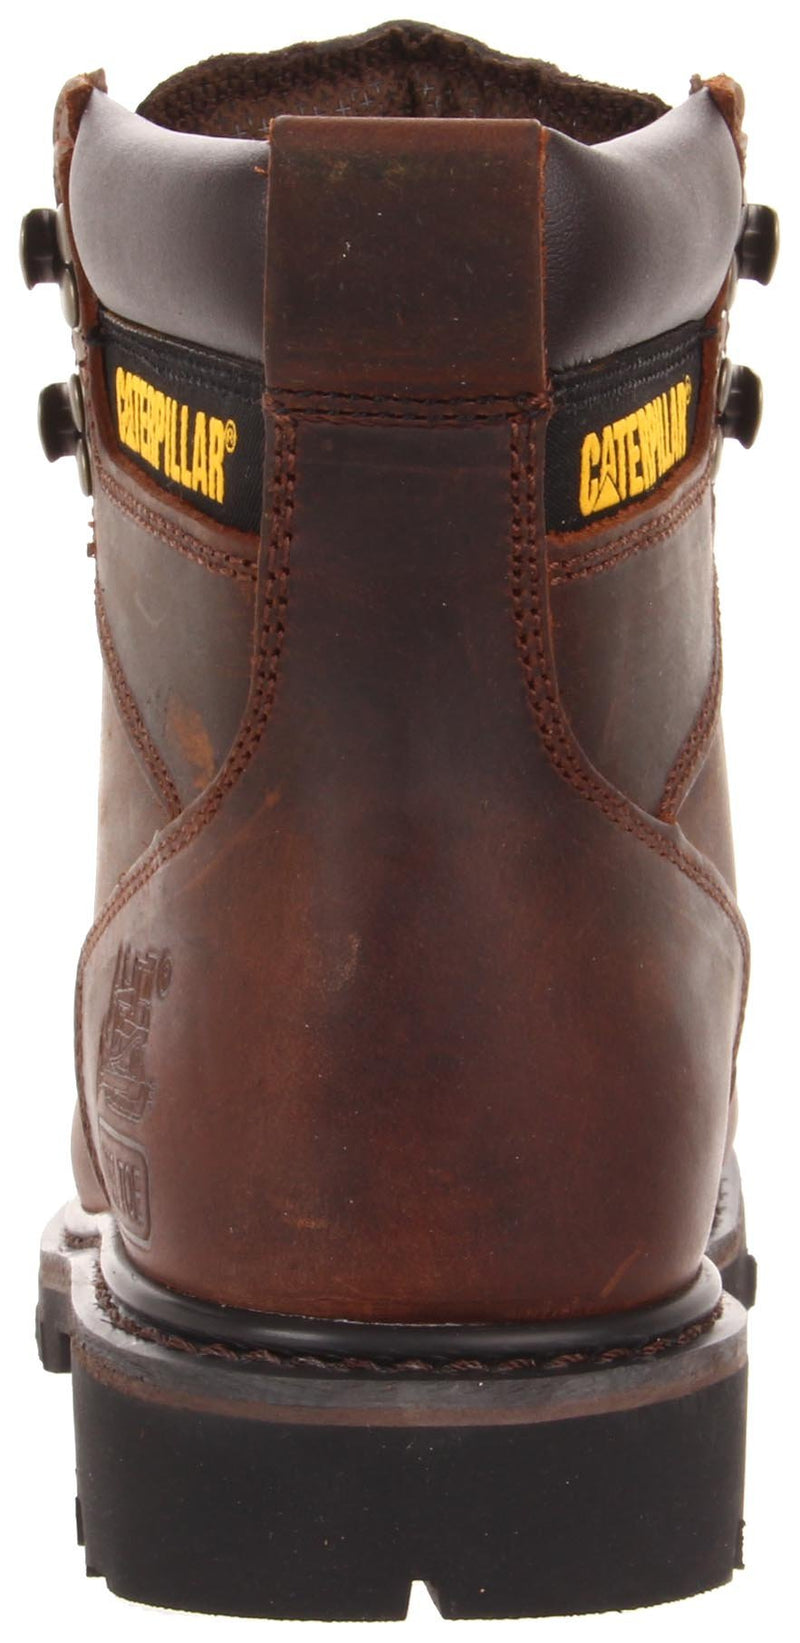 Caterpillar Men's Second Shift Steel Toe Work Boot, Dark Brown, 11 M US - Epivend